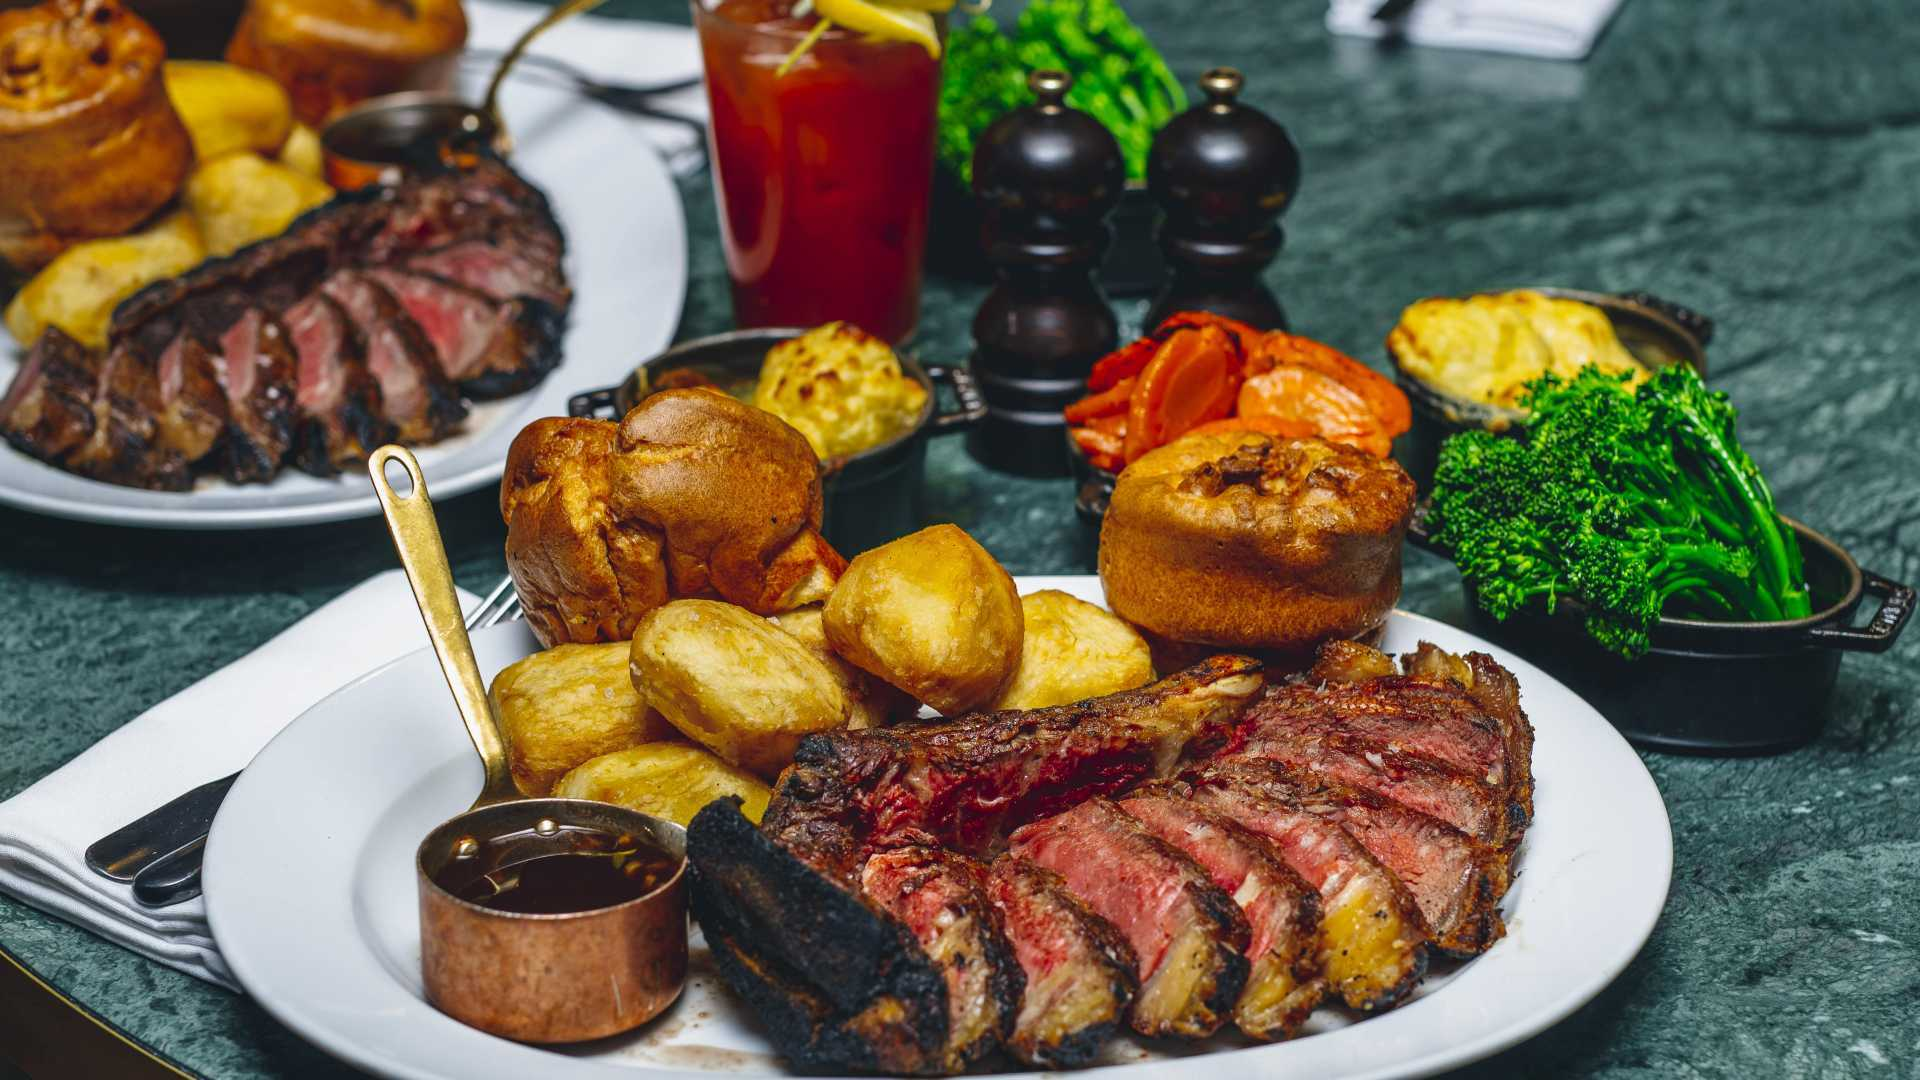 This is a photo of The Coal Shed's sharing roast platter.